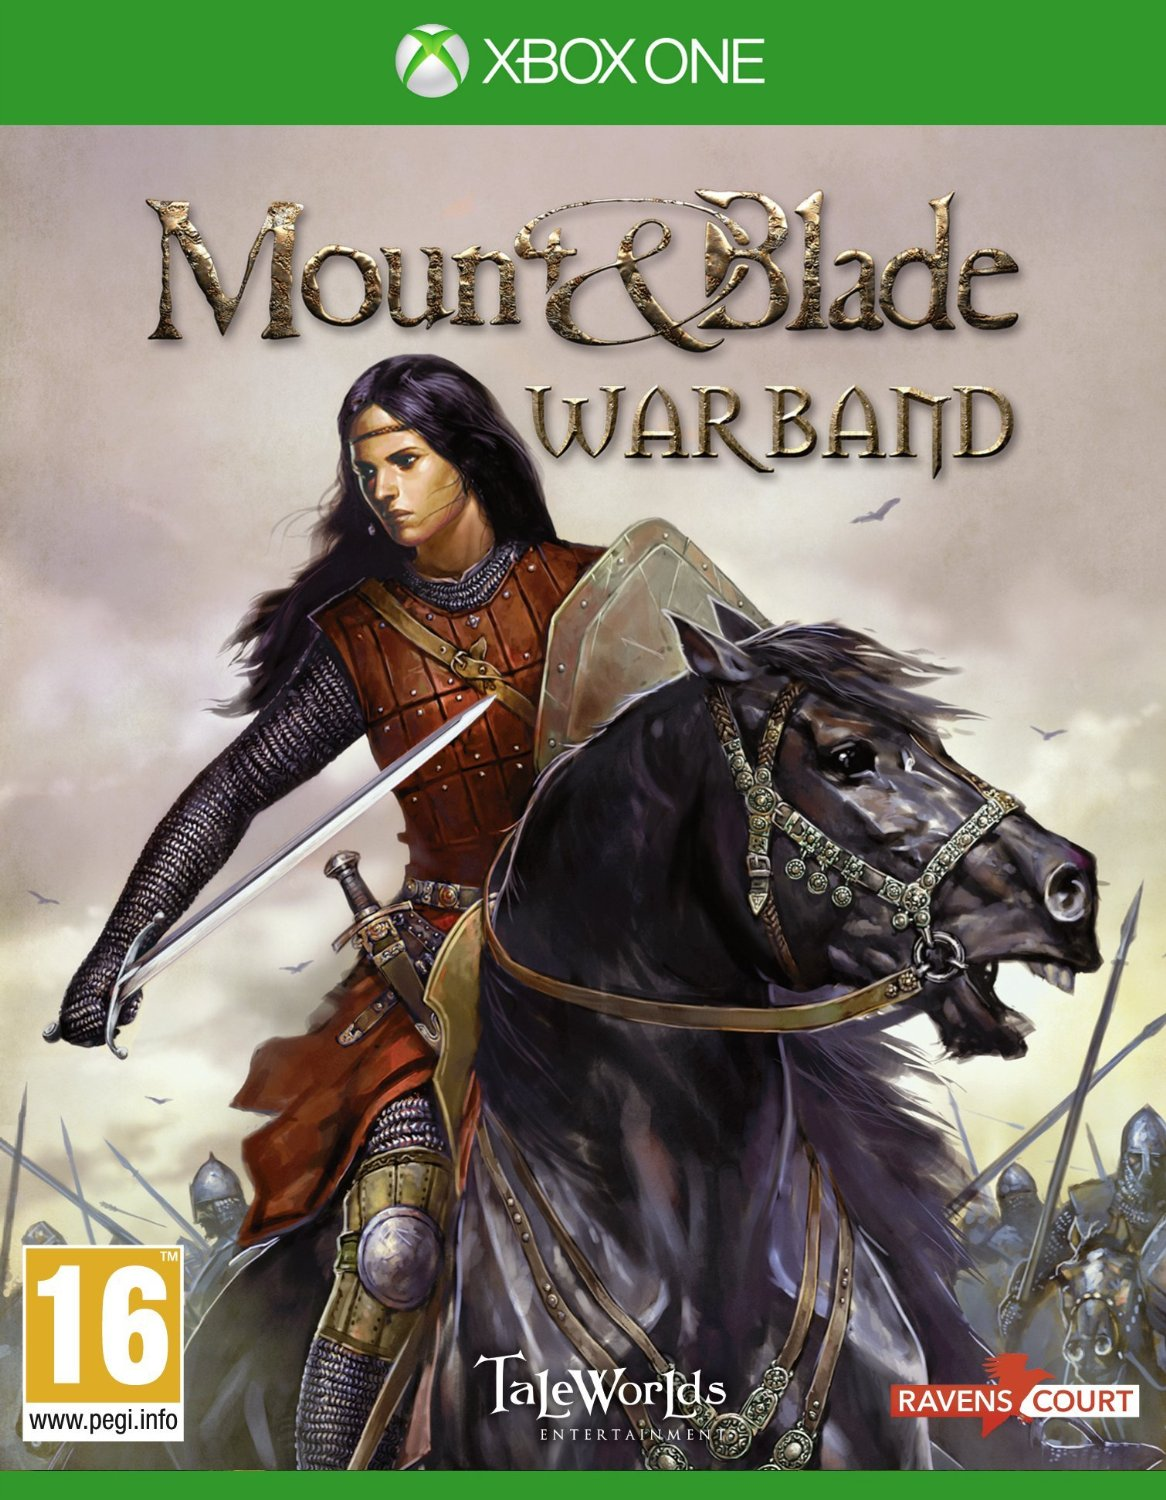 "Mount & Blade: Warband /Xbox One                                                                                                                      <br><span class=""capt-avtor""> By:Microsoft                                         </span><br><span class=""capt-pari""> Eur:40.6 Мкд:2499</span>"